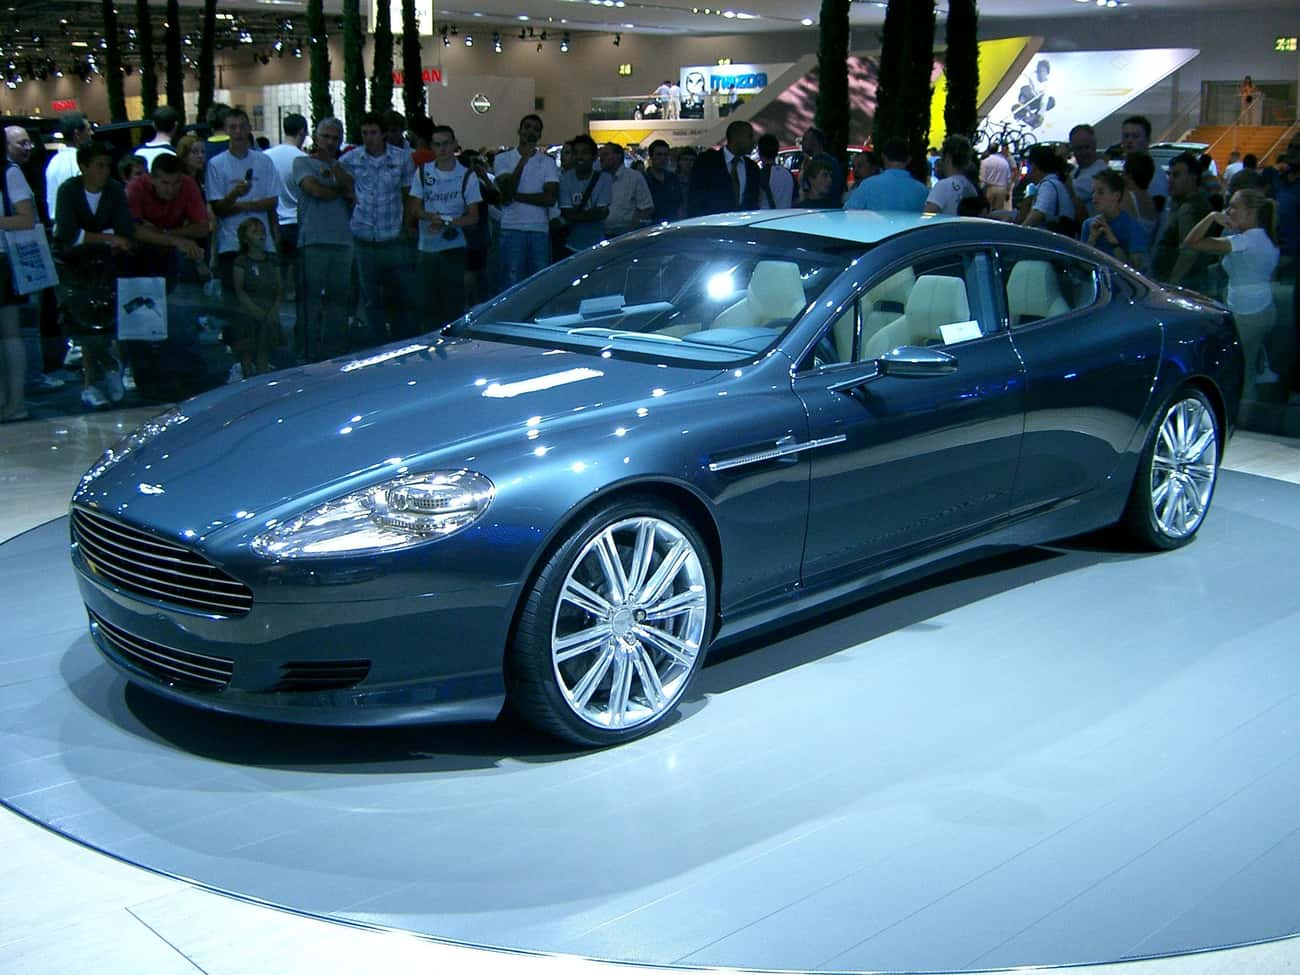 Aston Martin Rapide is listed (or ranked) 2 on the list Full List of Aston Martin Models